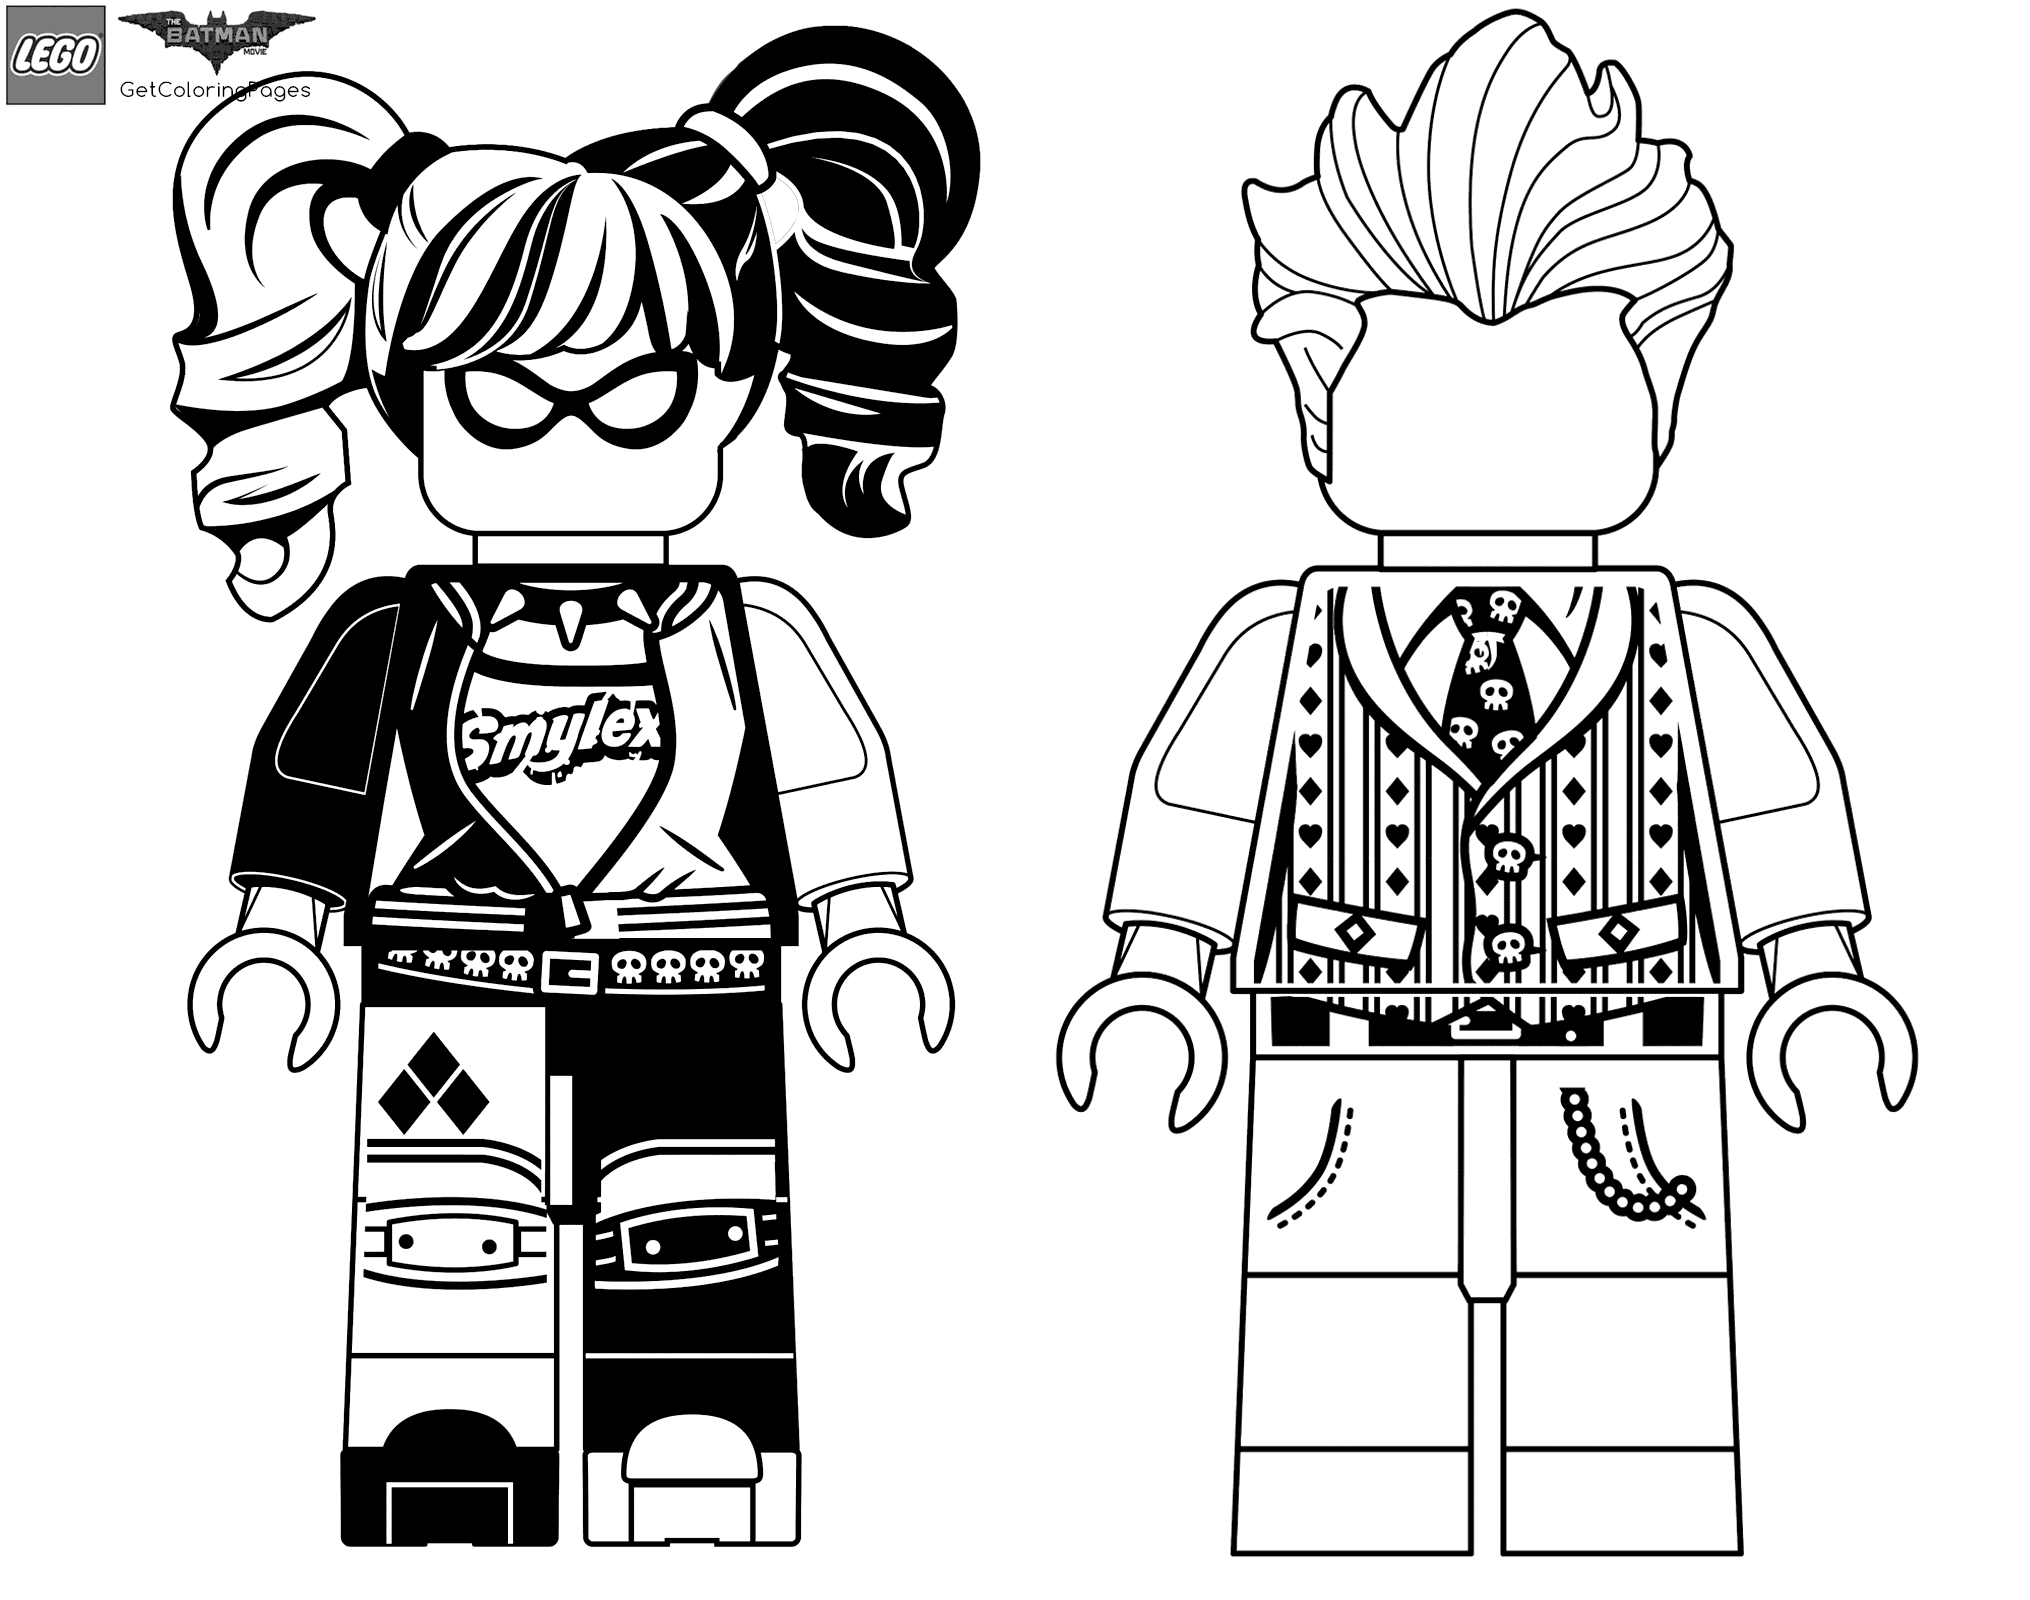 lego harley quinn harley quinn and joker coloring pages at getcoloringscom quinn harley lego